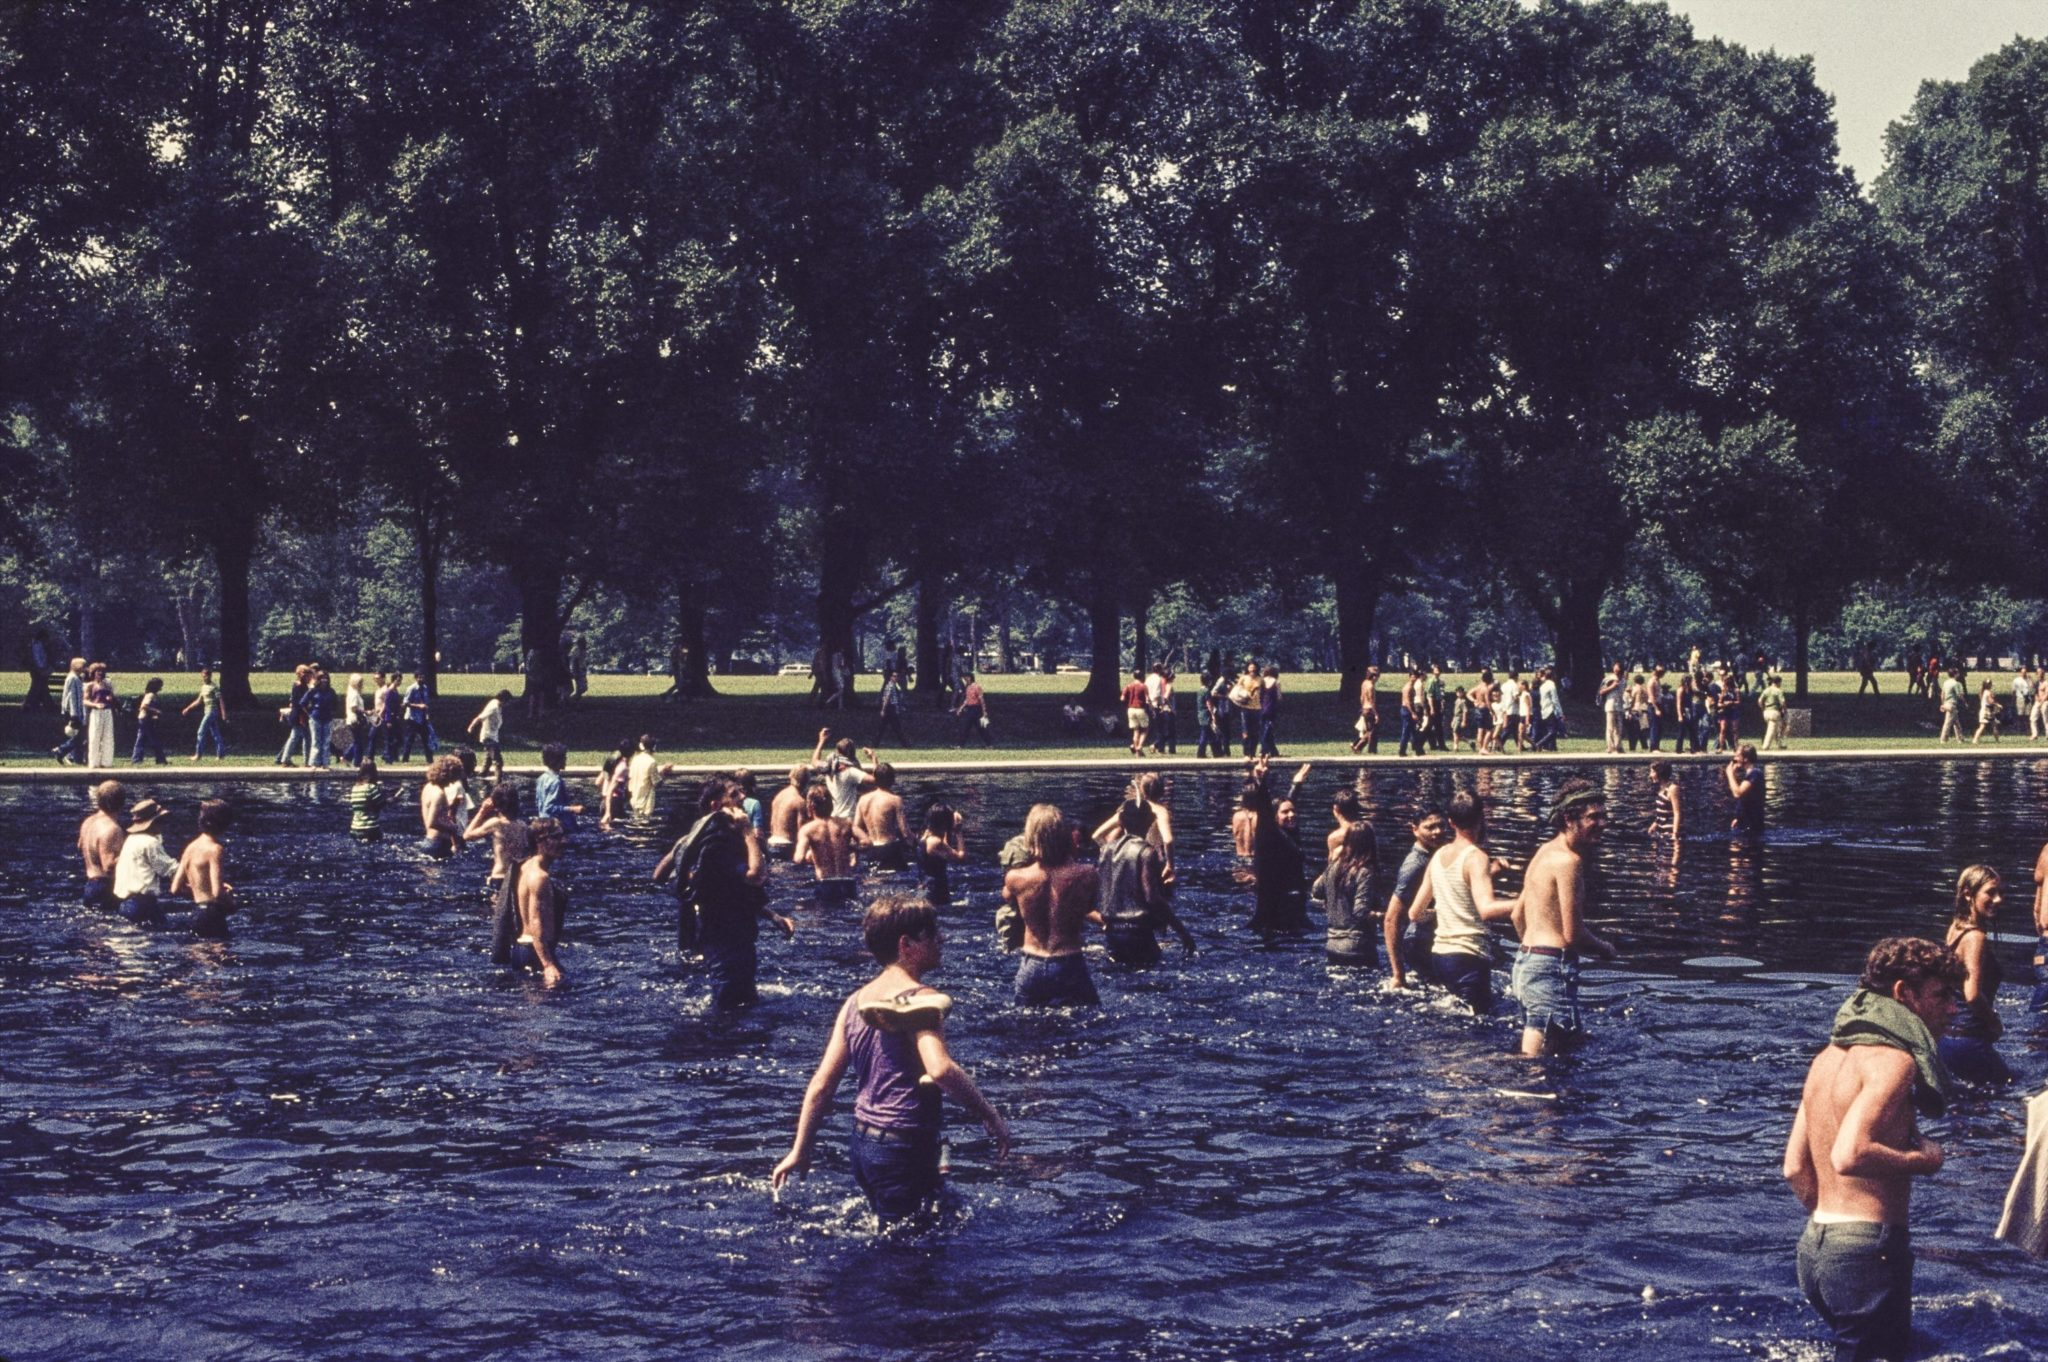 PHOTOS: July 4, 1970, Was Politicized in DC. And Things Got Crazy